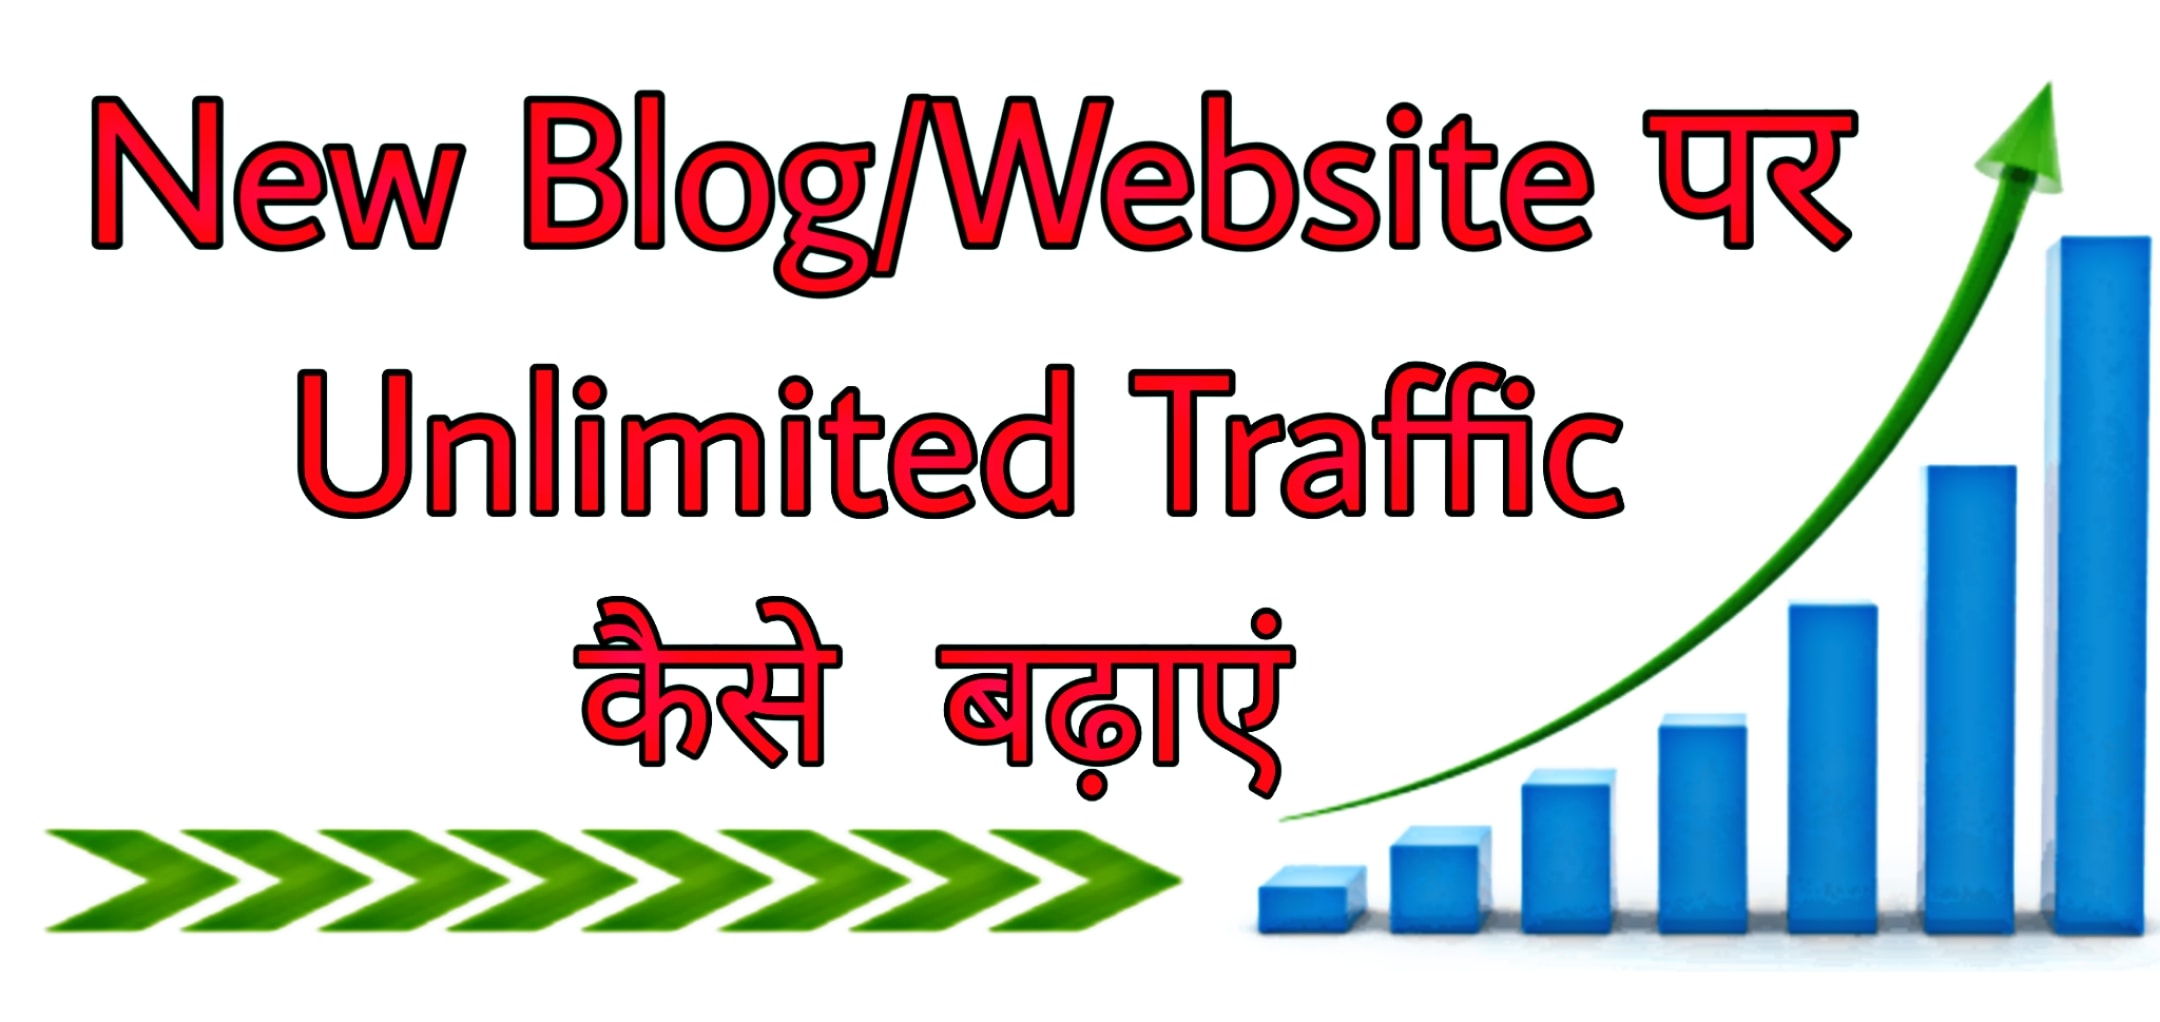 (Top 20 Tips) New Blog/Website पर Unlimited Traffic कैसे लाये in 2021